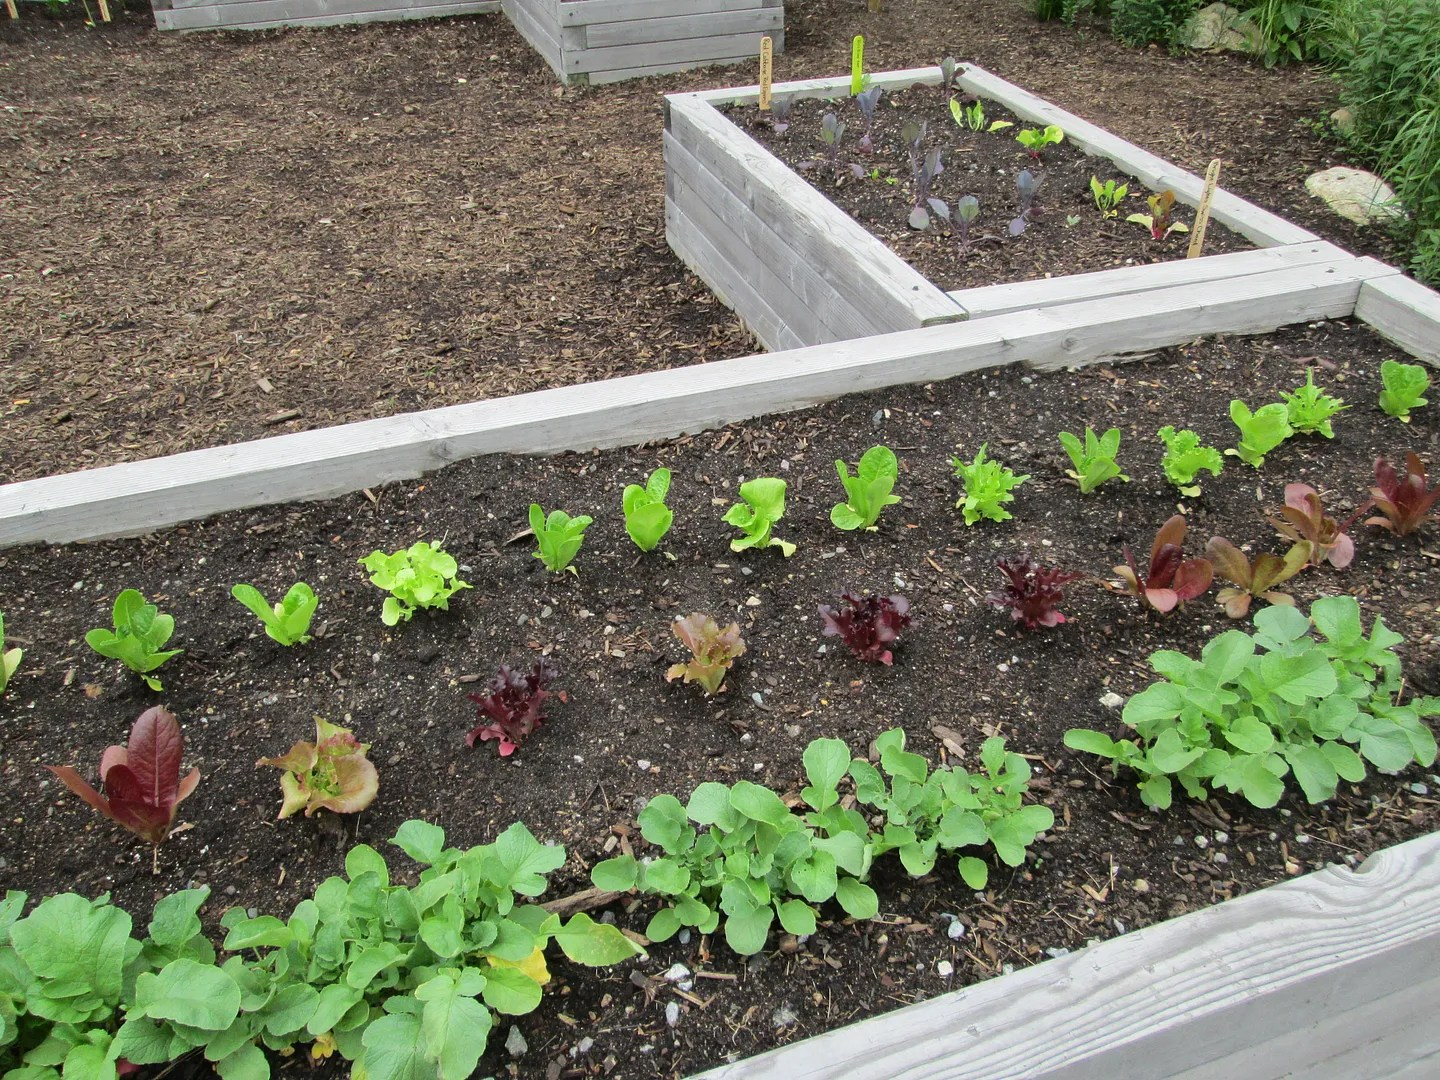 food garden in dewey square with raised beds growing lettuce and other green vegetables